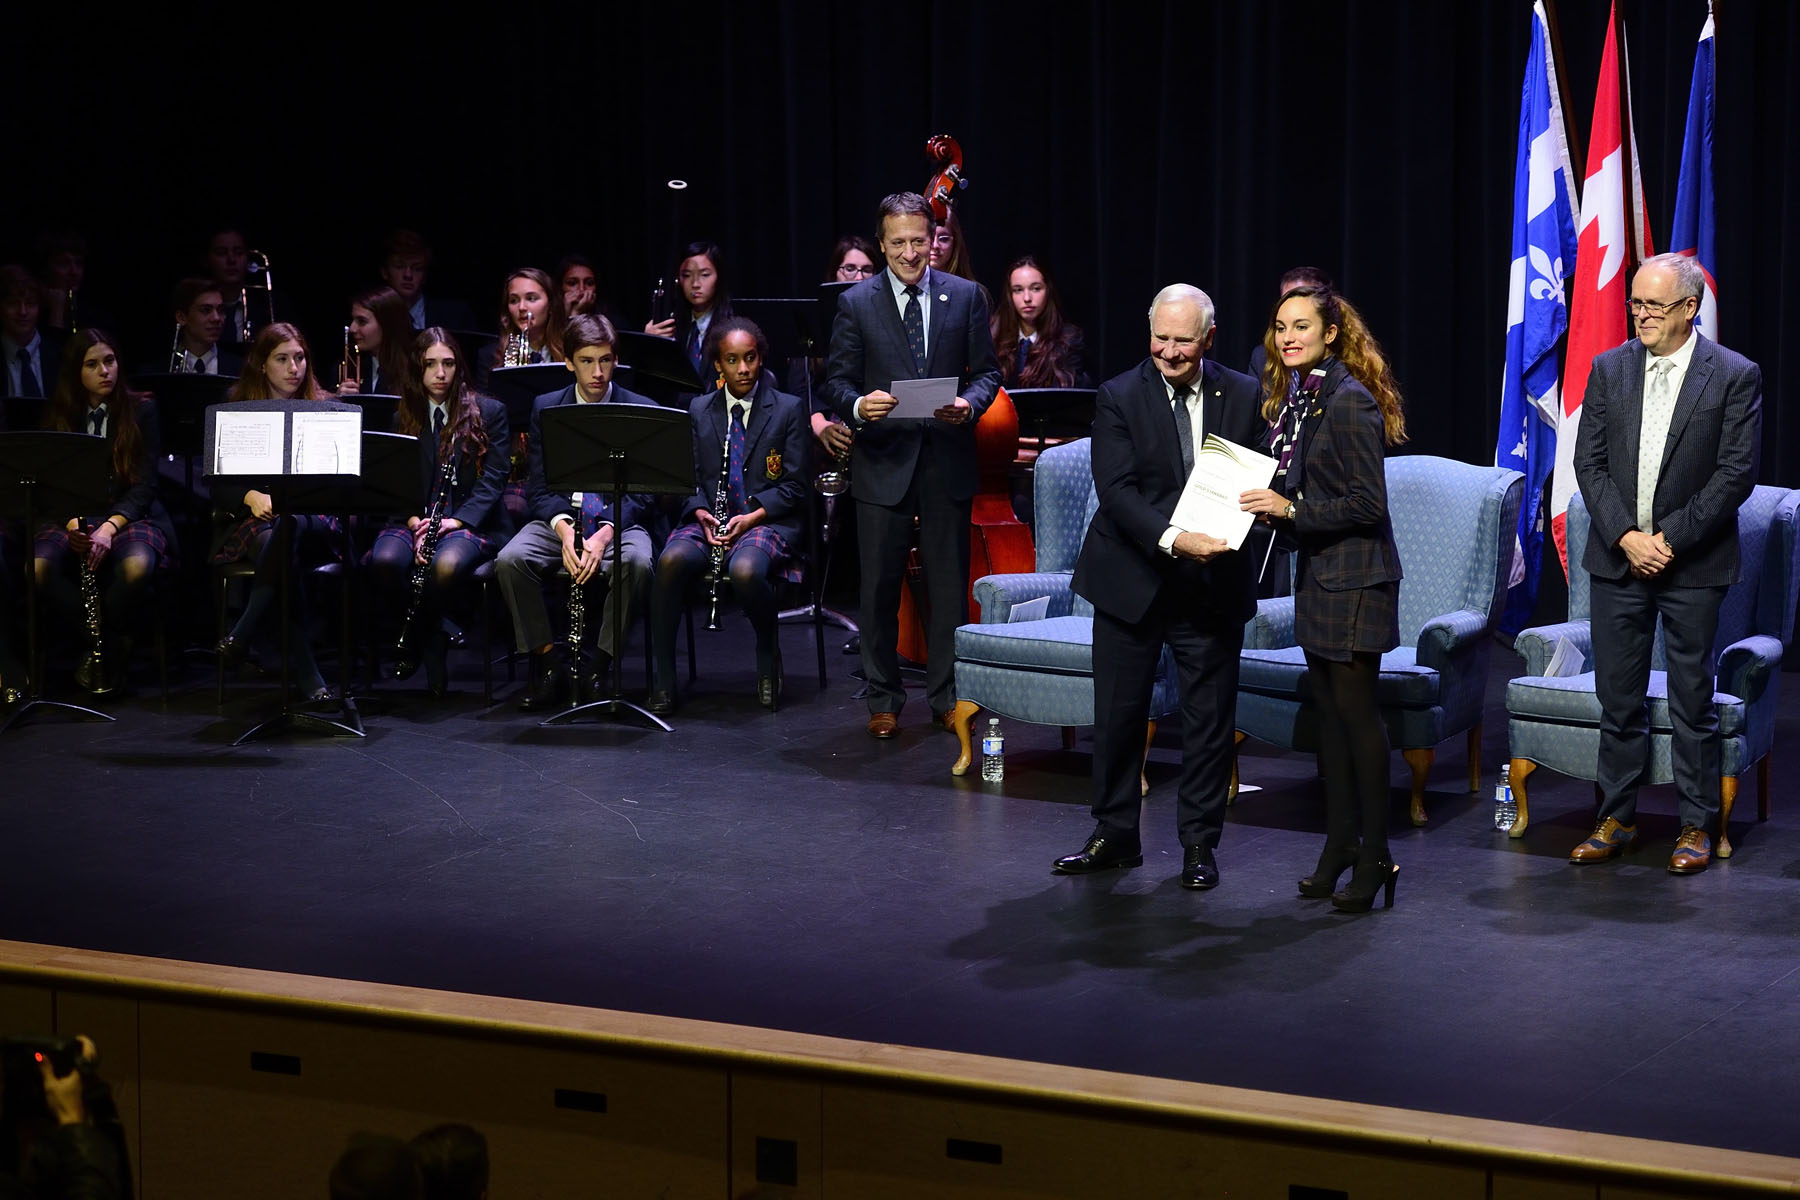 The Governor General presented The Duke of Edinburgh's Gold Award to more than 60 young people from across Canada.